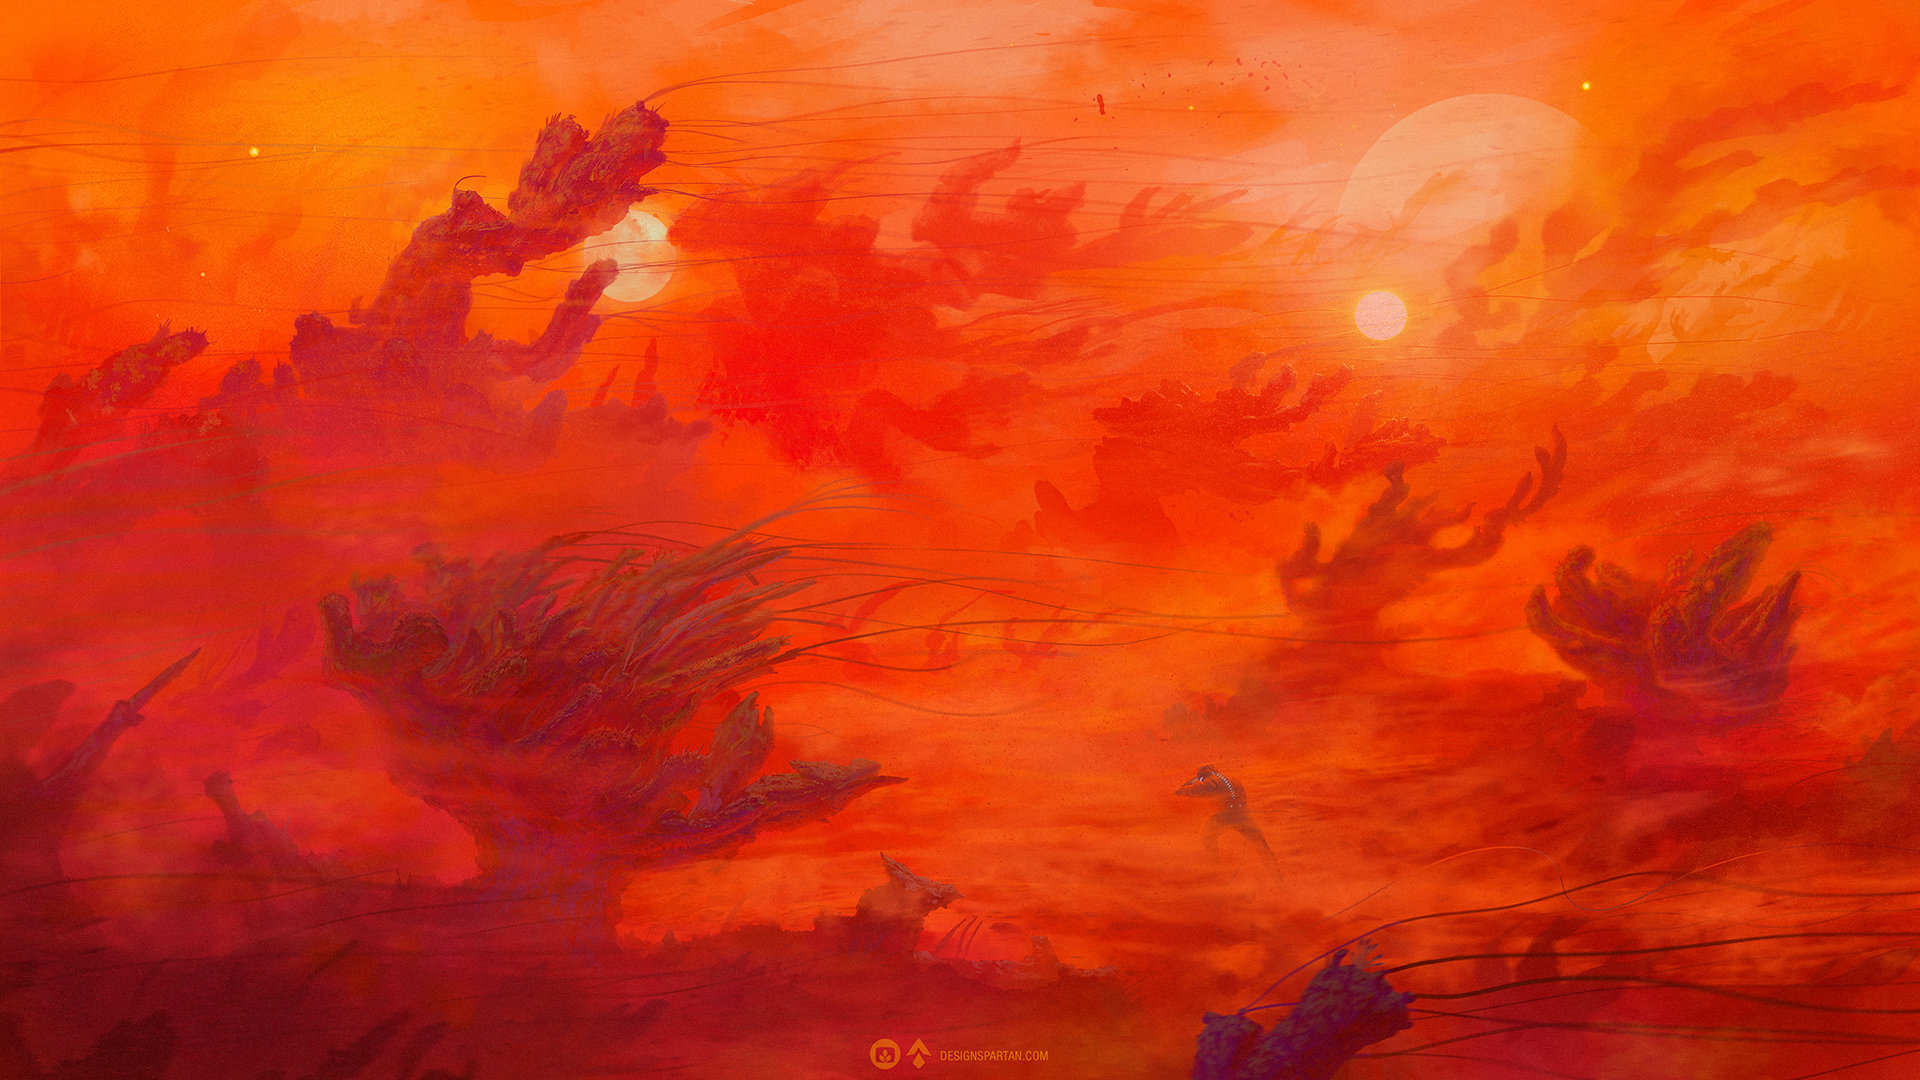 gaetan-weltzer-desktopography2015-red-planet-final par Spartan de DPSchool